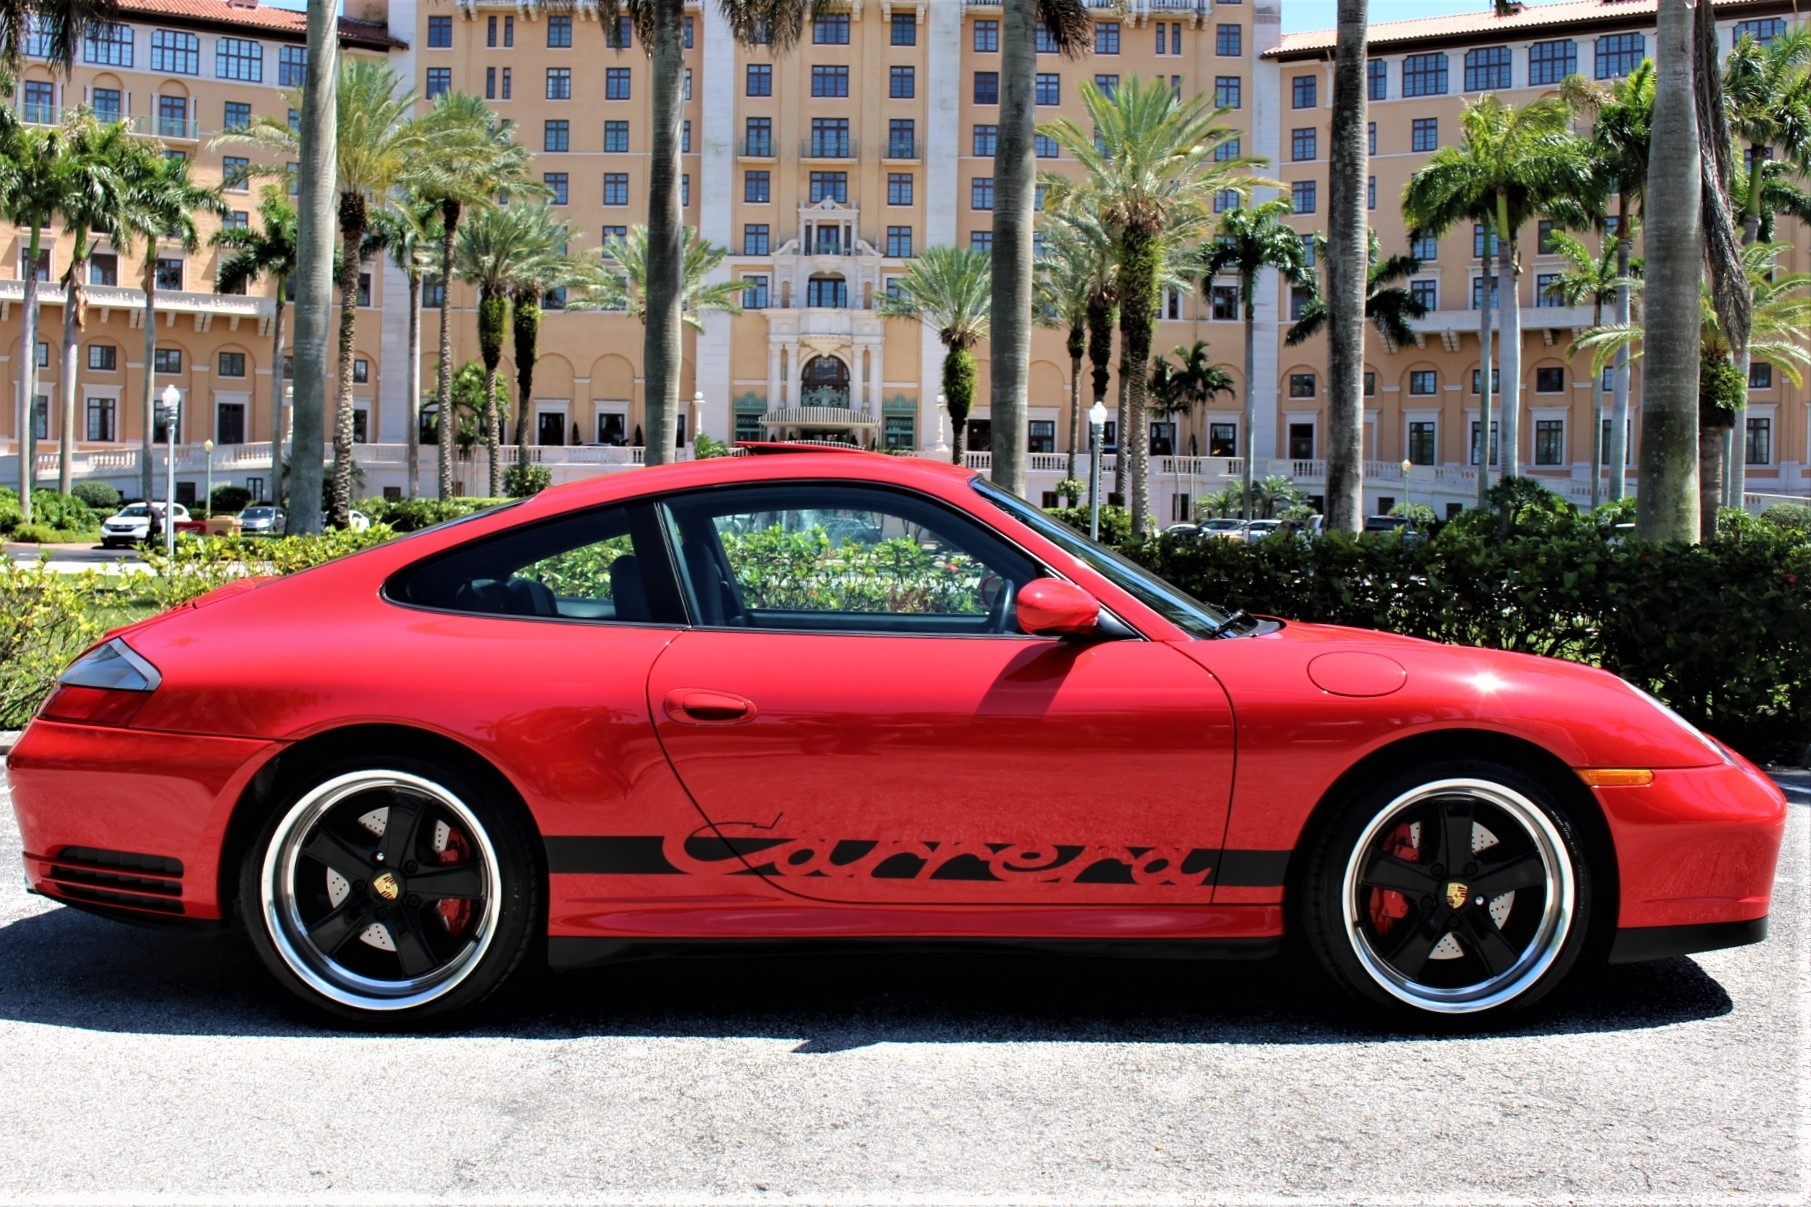 Used 2003 Porsche 911 Carrera 4S for sale Sold at The Gables Sports Cars in Miami FL 33146 1